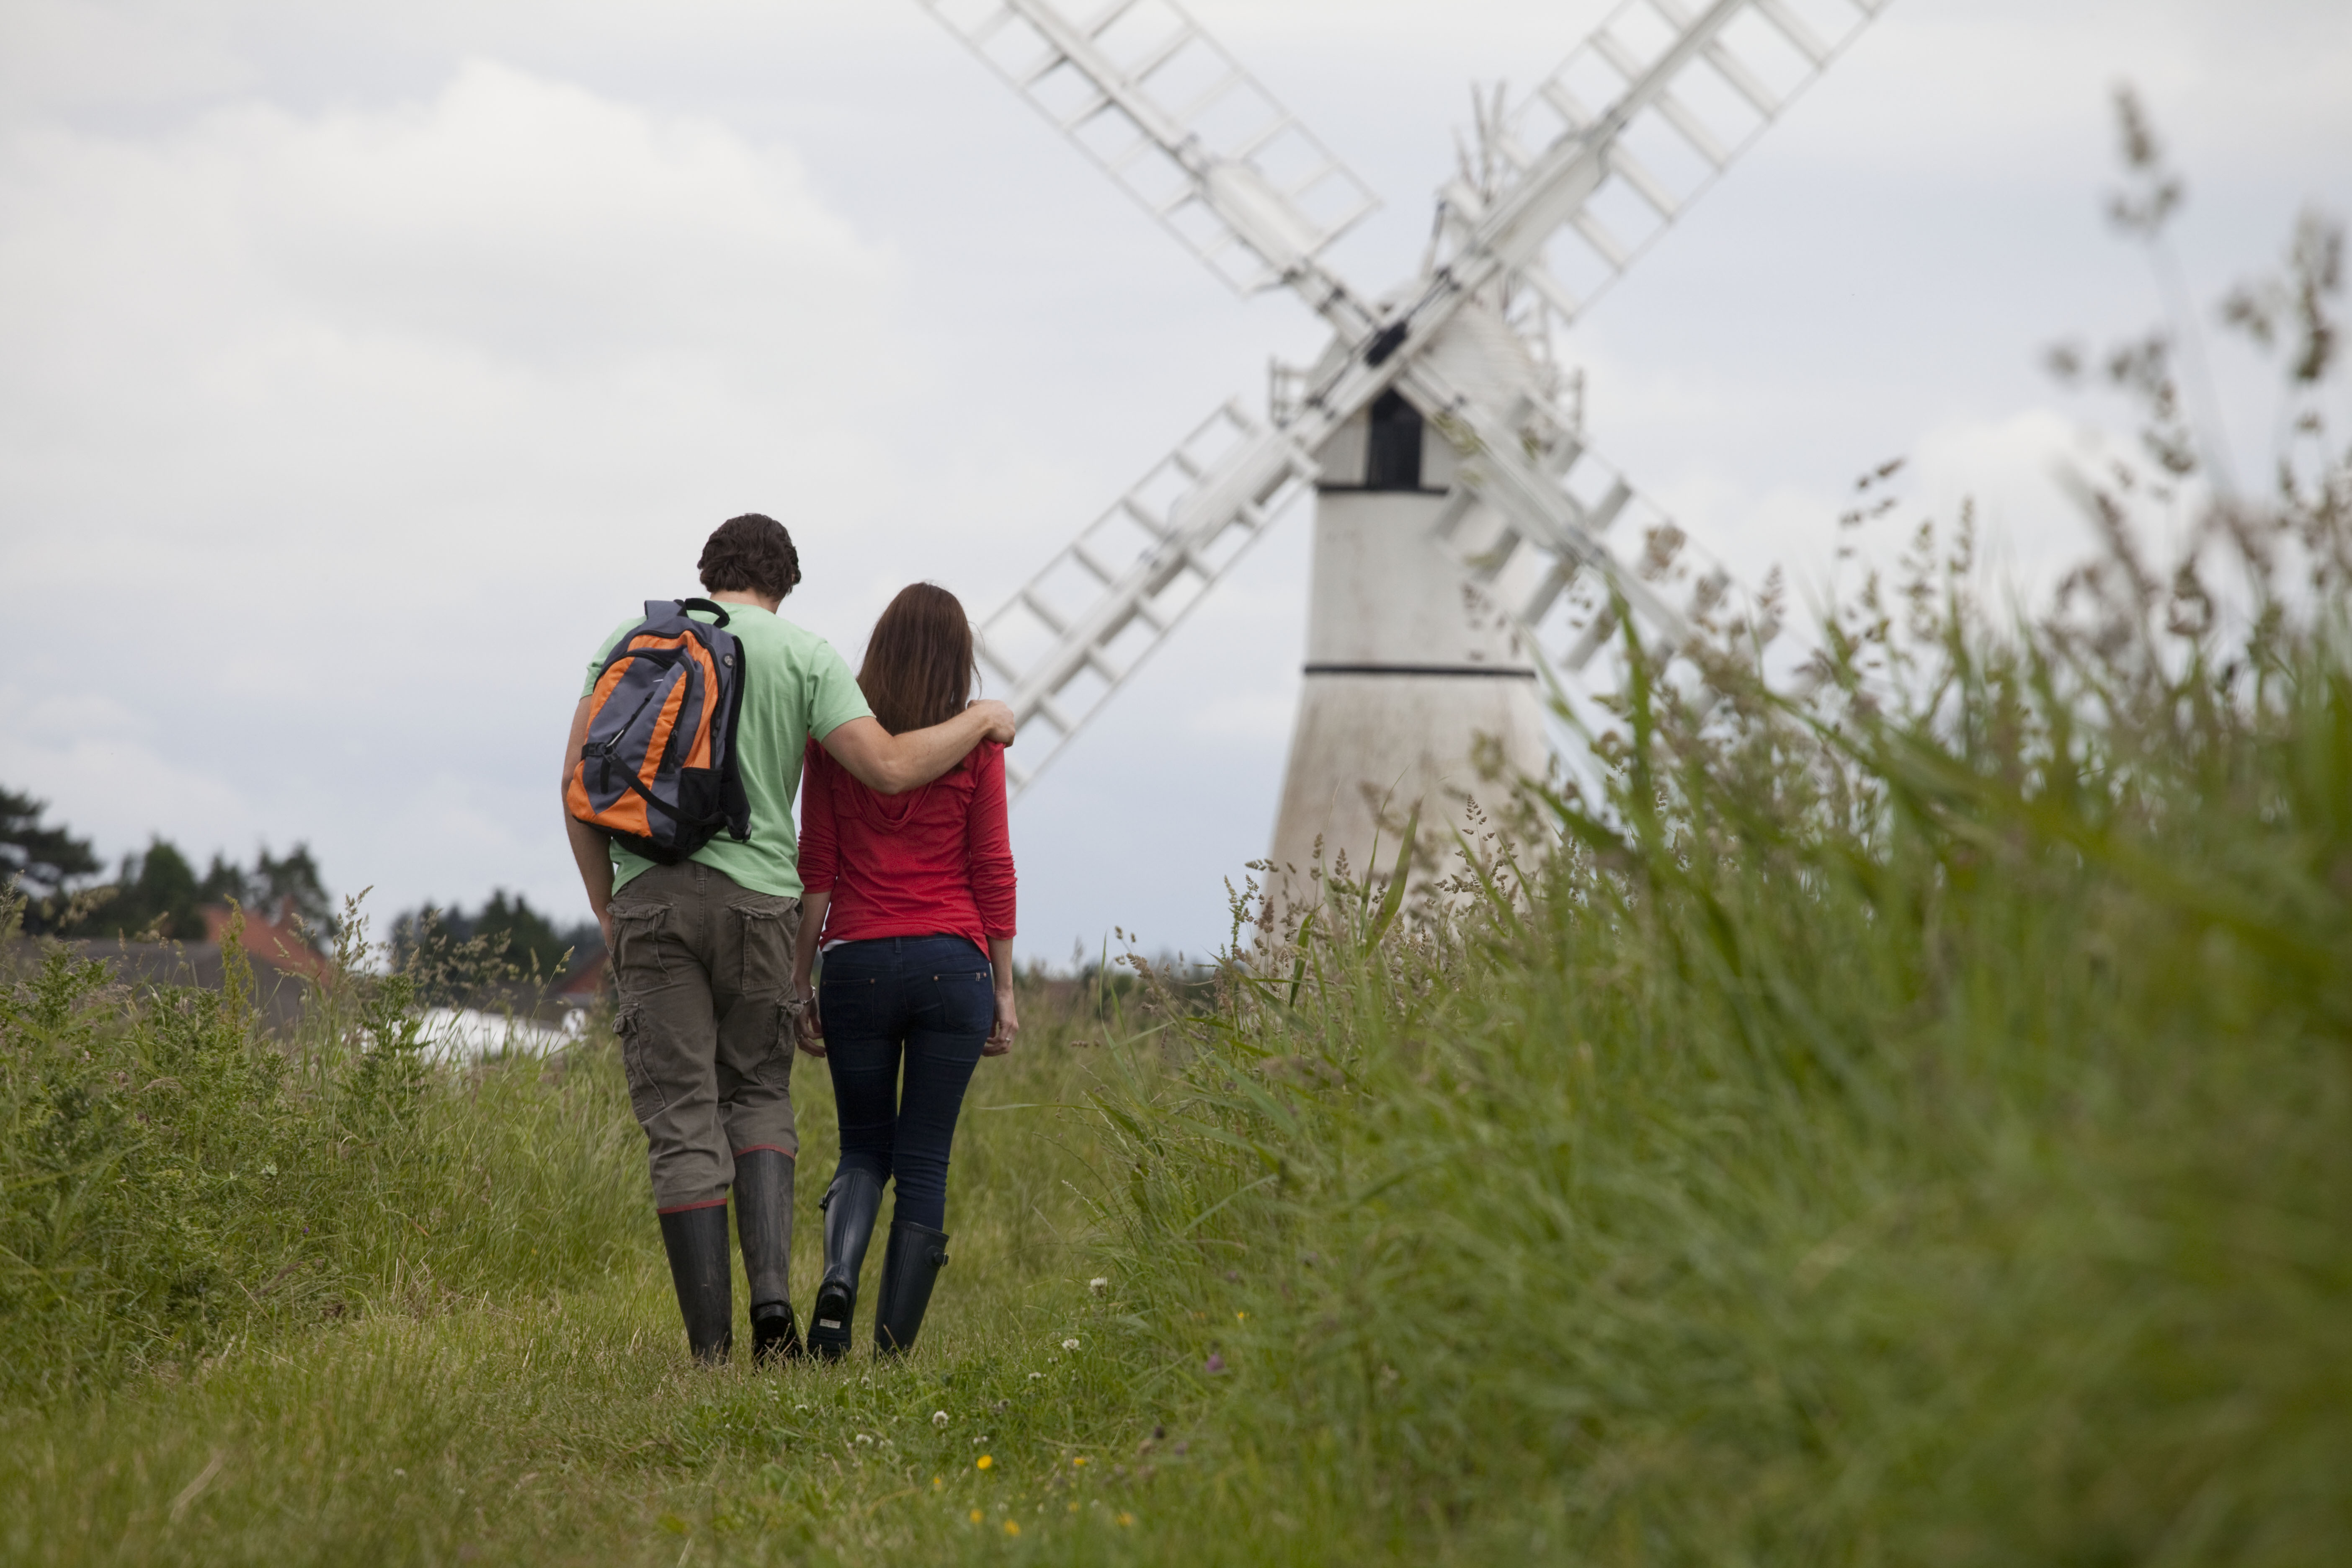 When looking for a honeymoon in the UK, the Broads National Park is a great option.